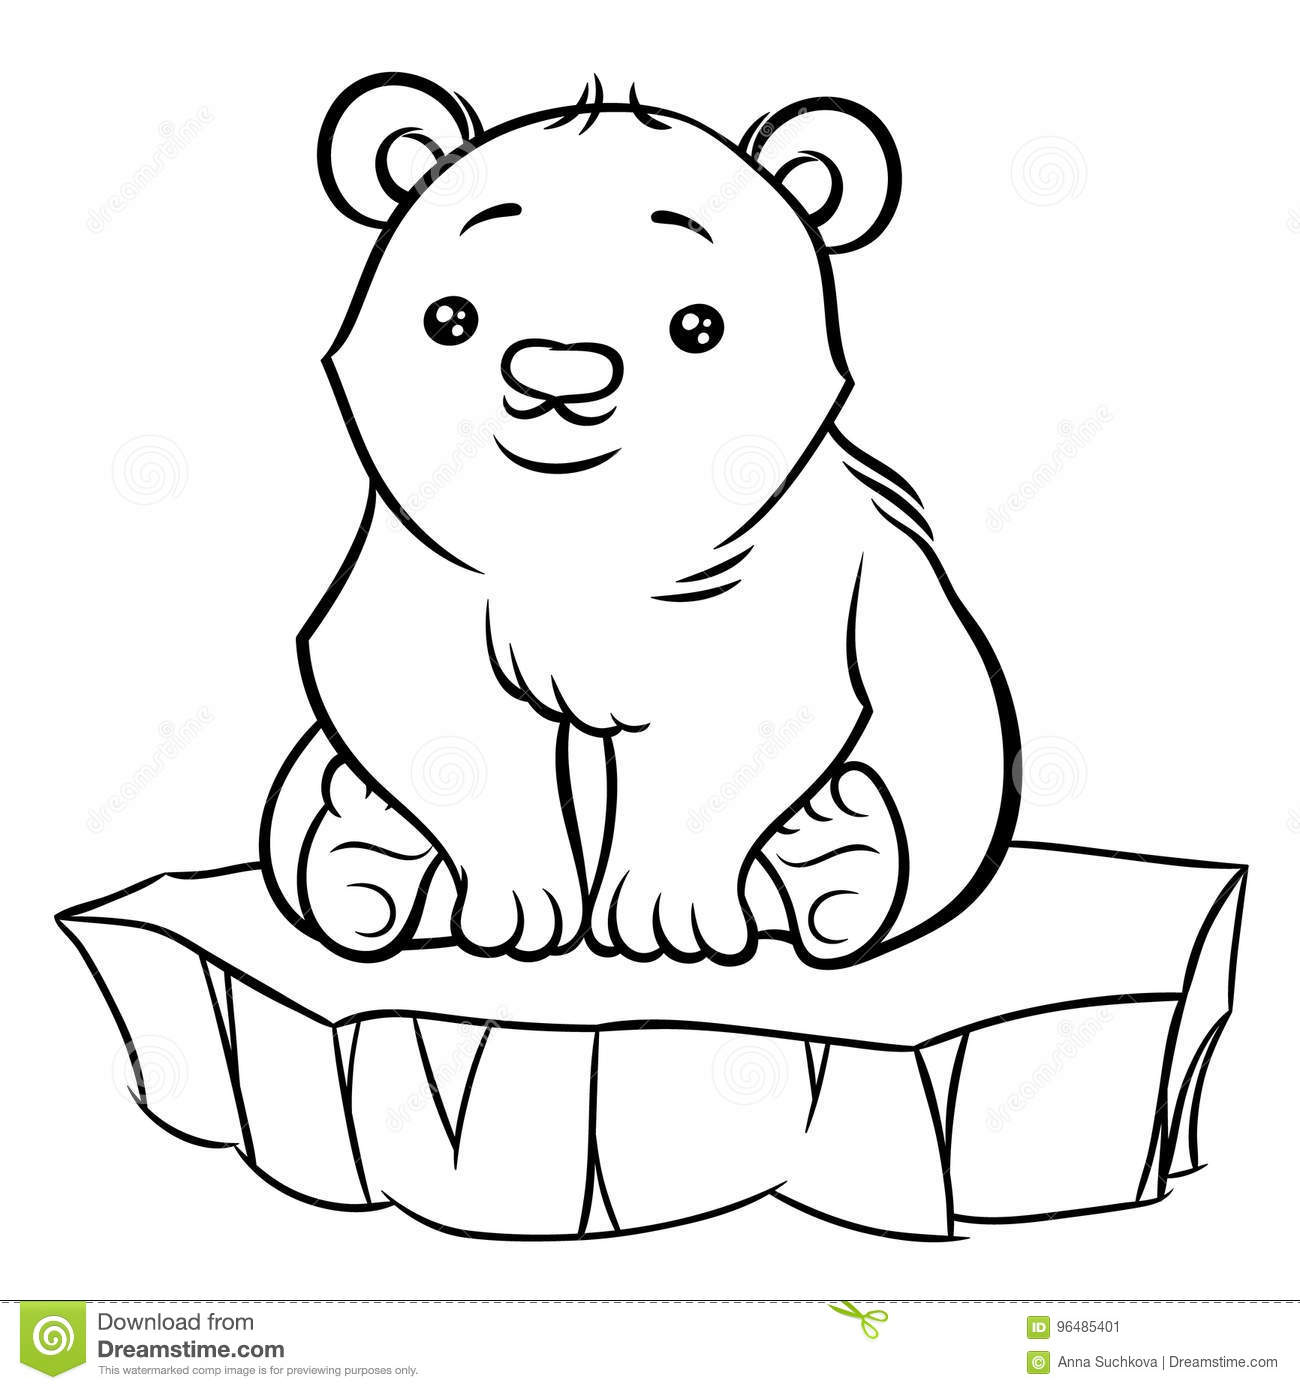 Illustration Of Cute Cartoon Baby Polar Bear Stock Vector